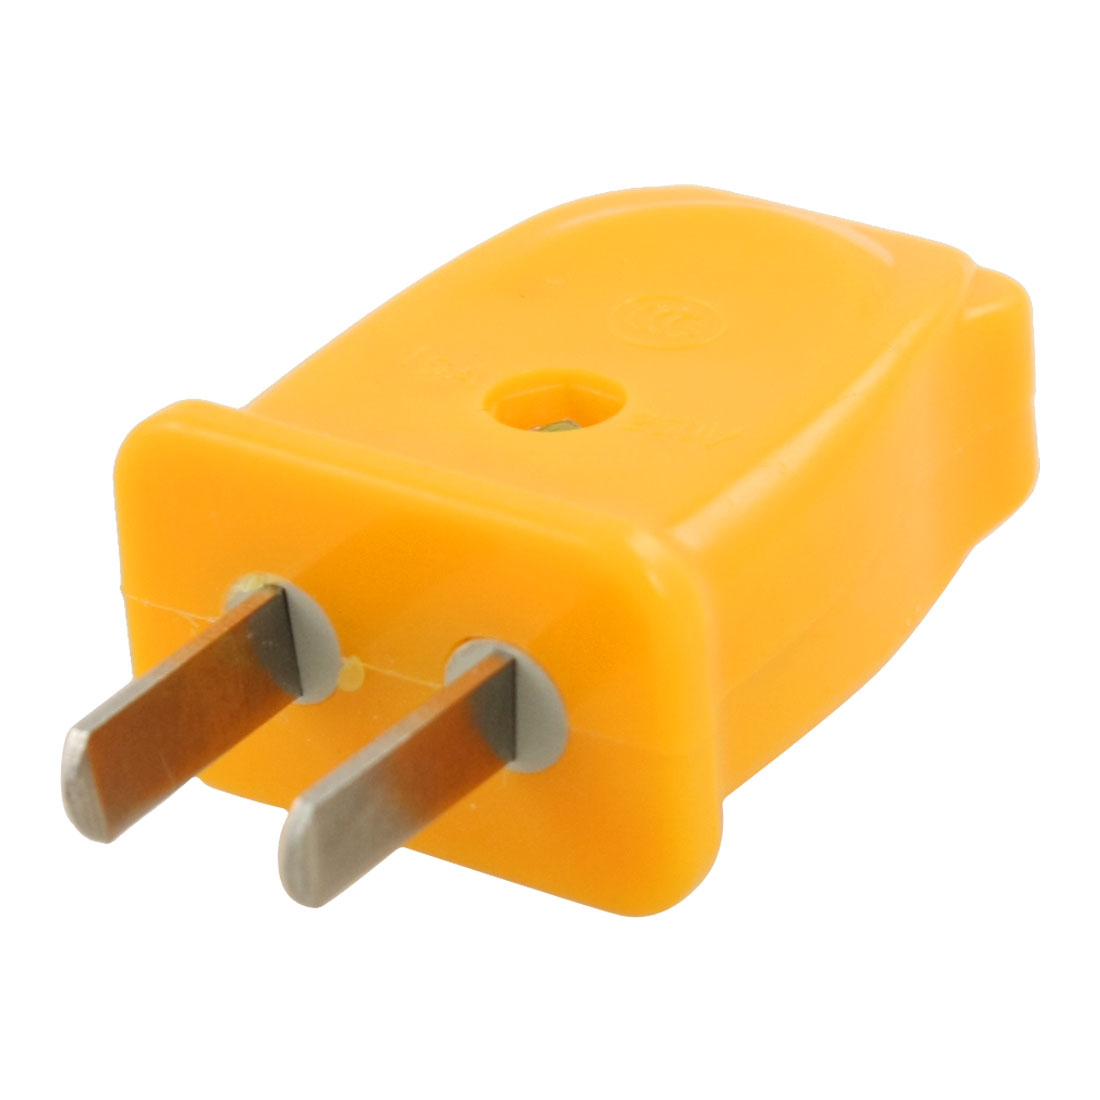 Replacement AU US 2 Pin Plug Connector Adapter 250V 16A